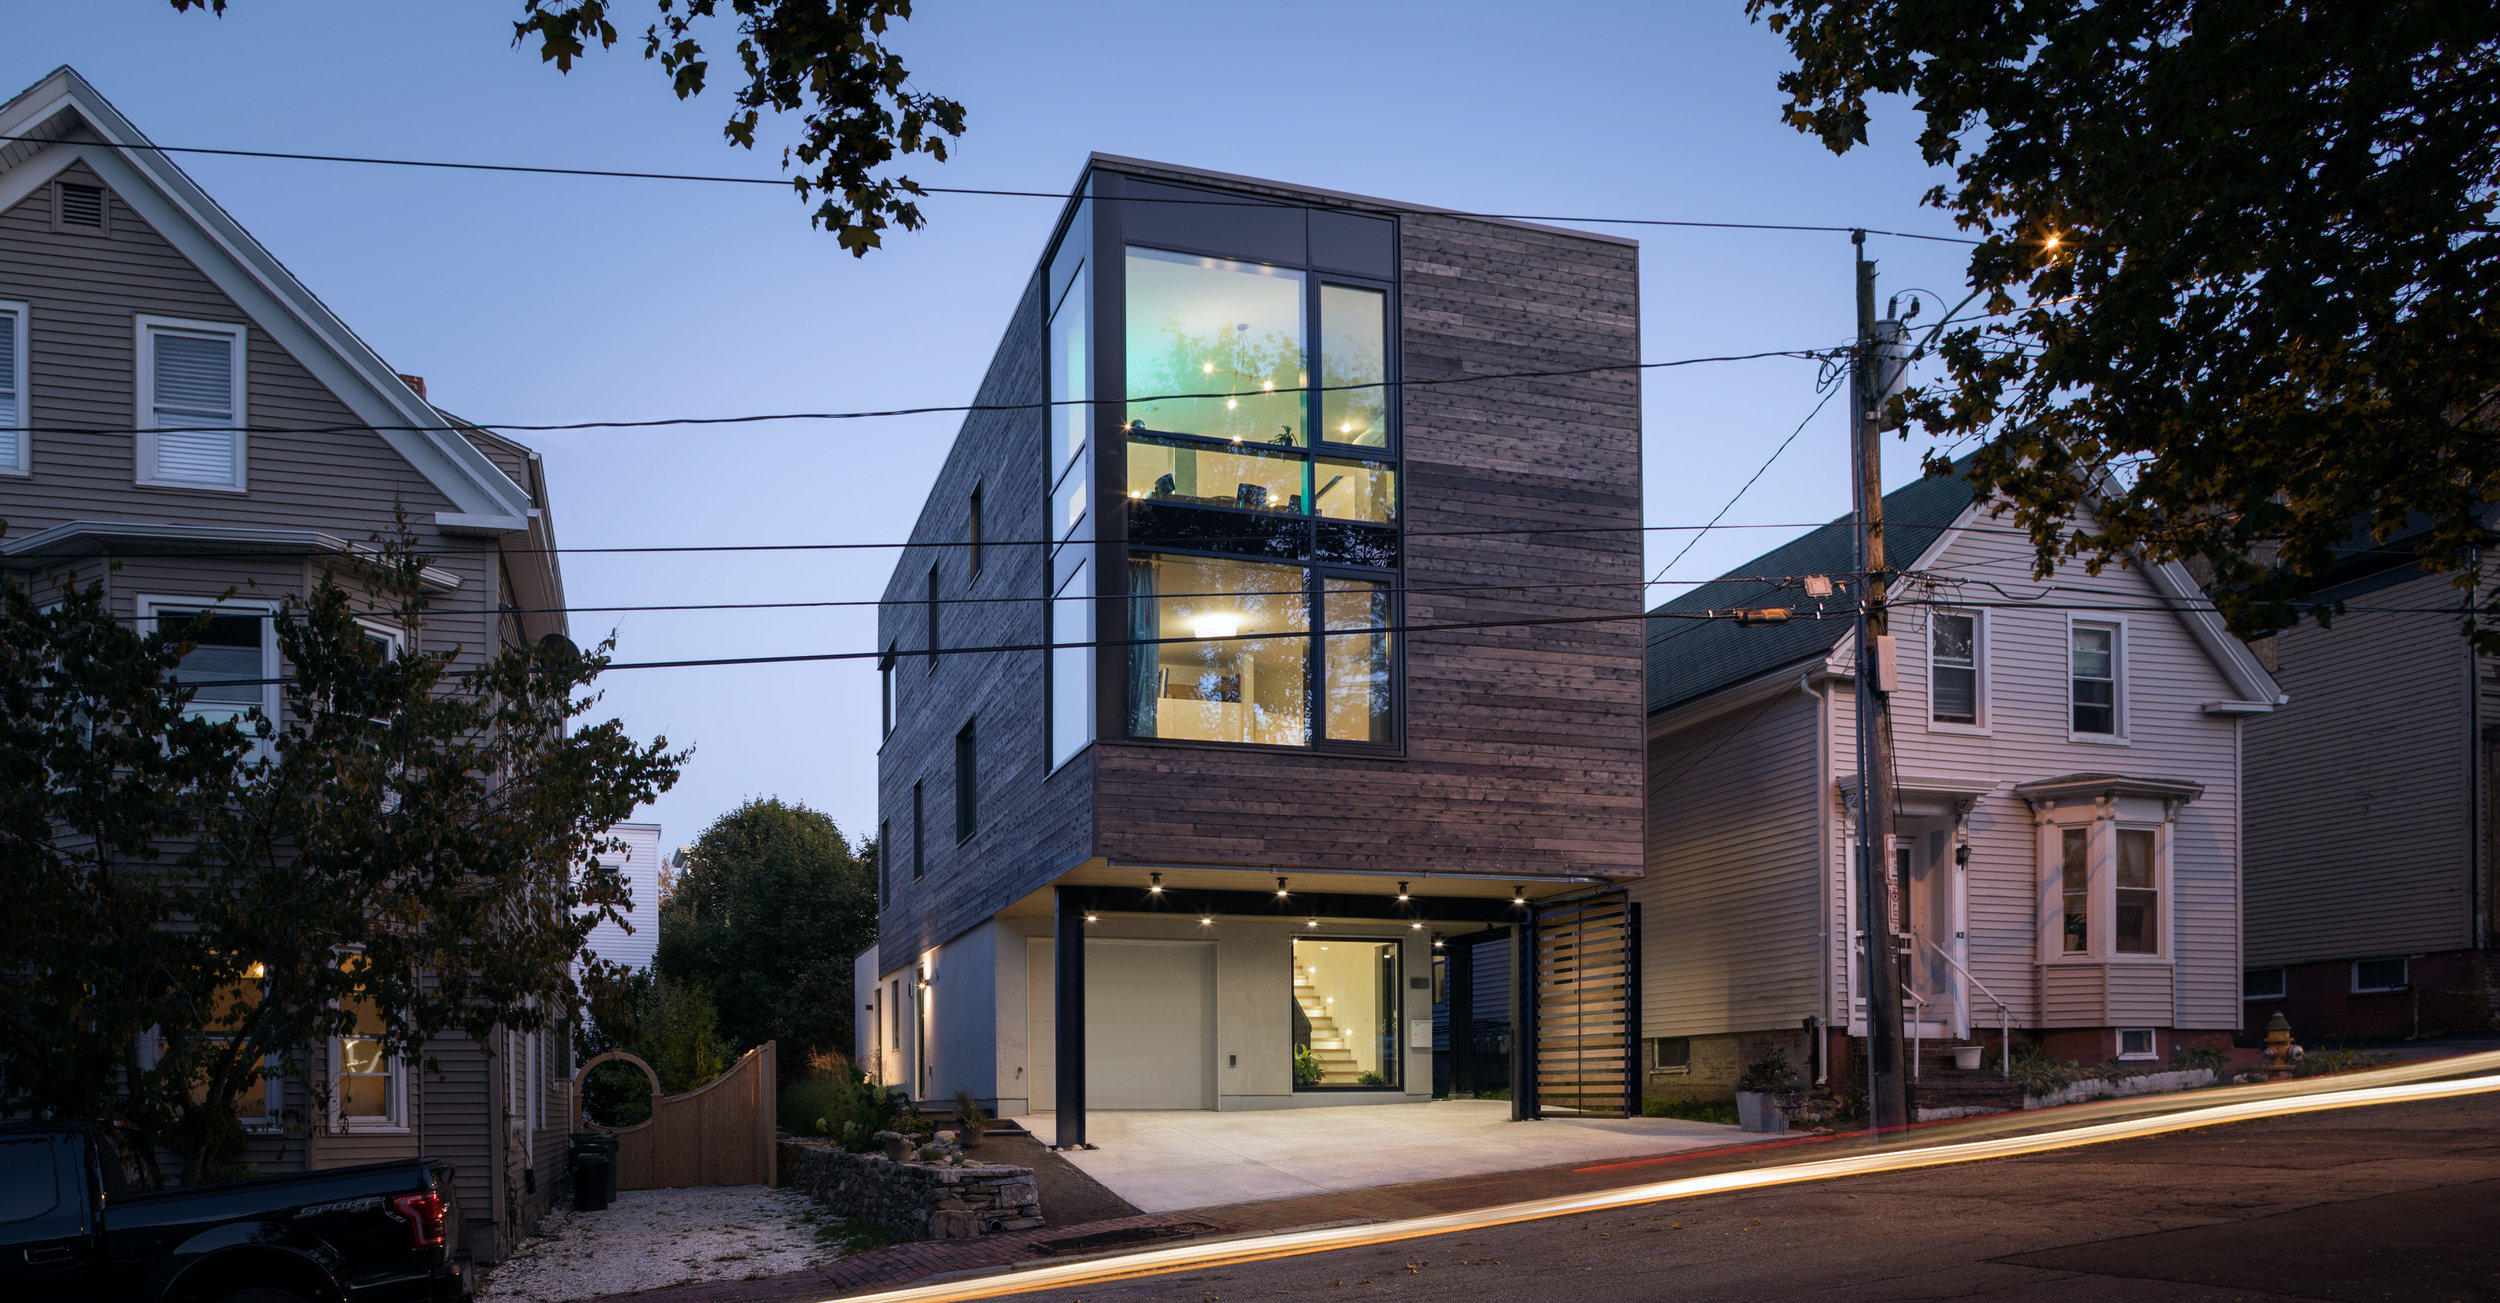 CITATION / RESIDENTIAL    Boxed In(fill): Quebec St. Residence, Portland    OPAL (FORMERLY GO LOGIC)   PHOTOGRAPHED BY TRENT BELL